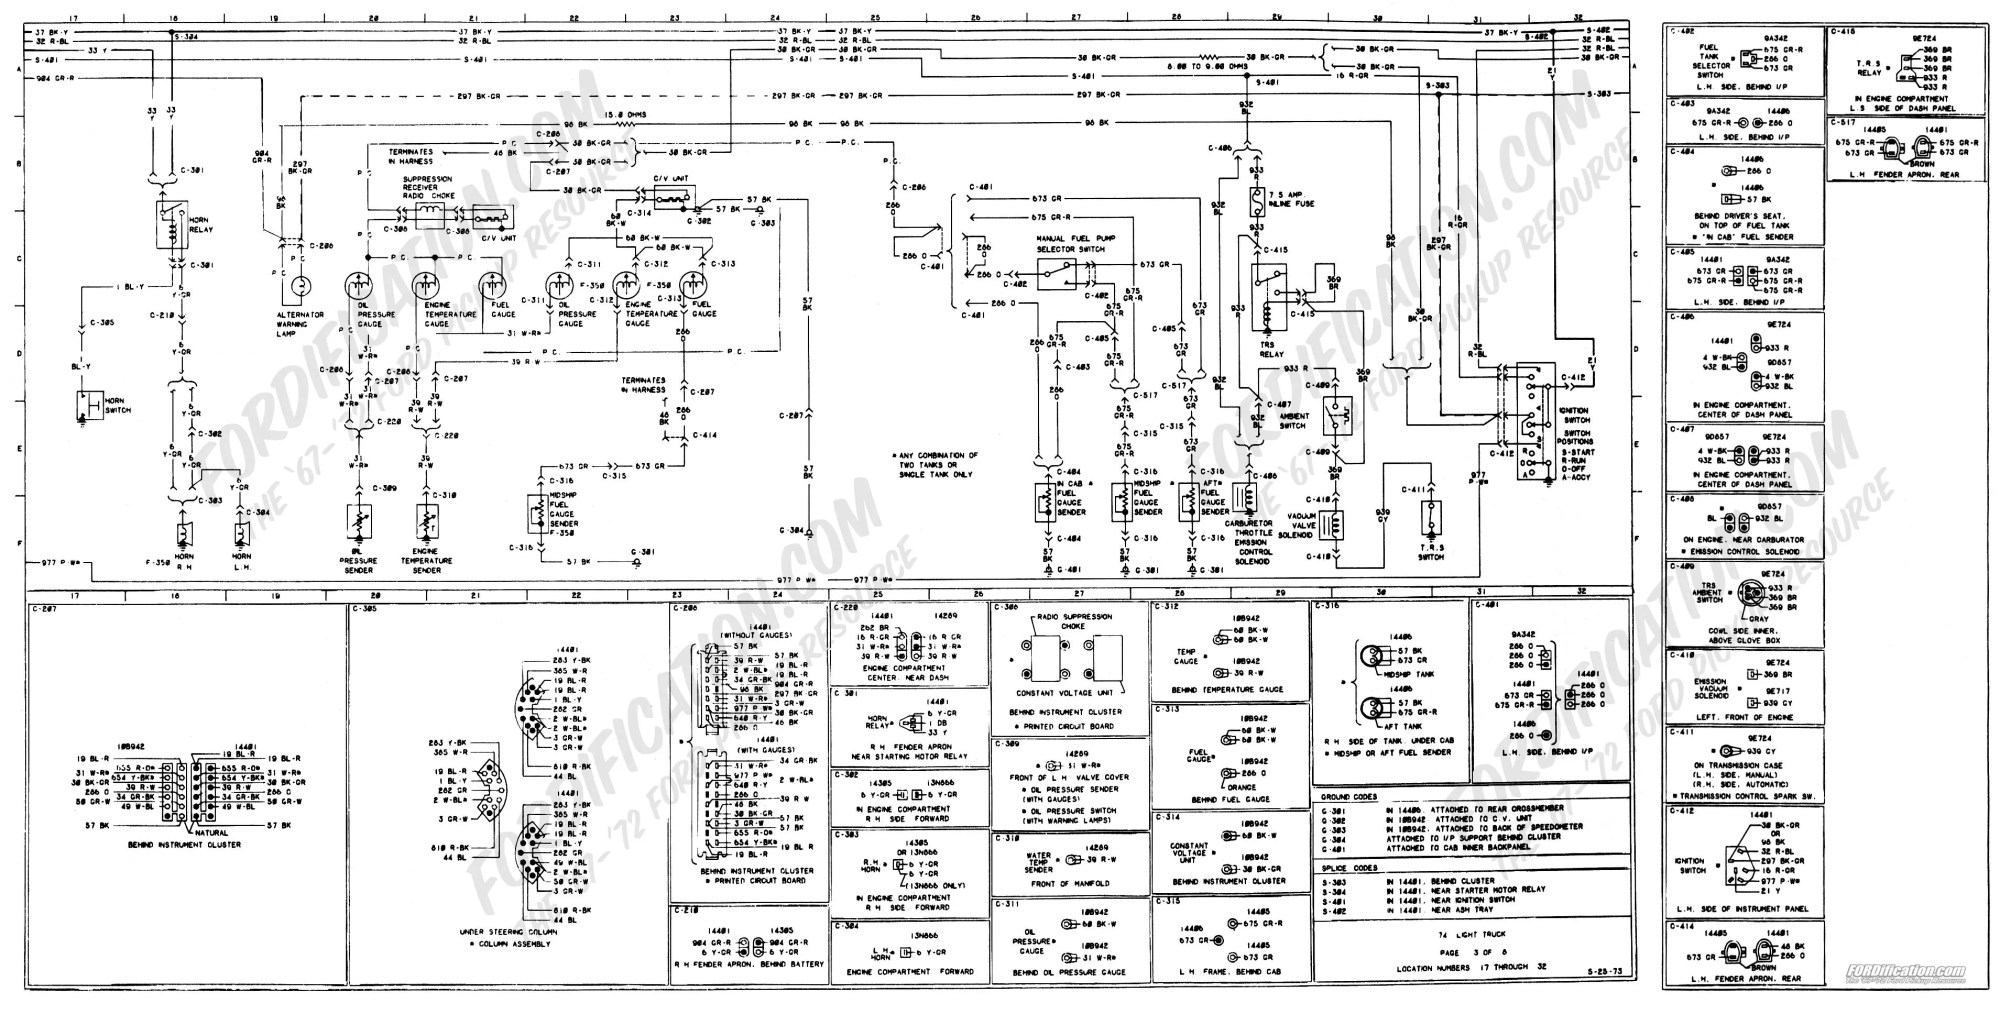 hight resolution of 1973 1979 ford truck wiring diagrams schematics fordification net 1999 ford truck wiring diagram ford truck electrical diagrams